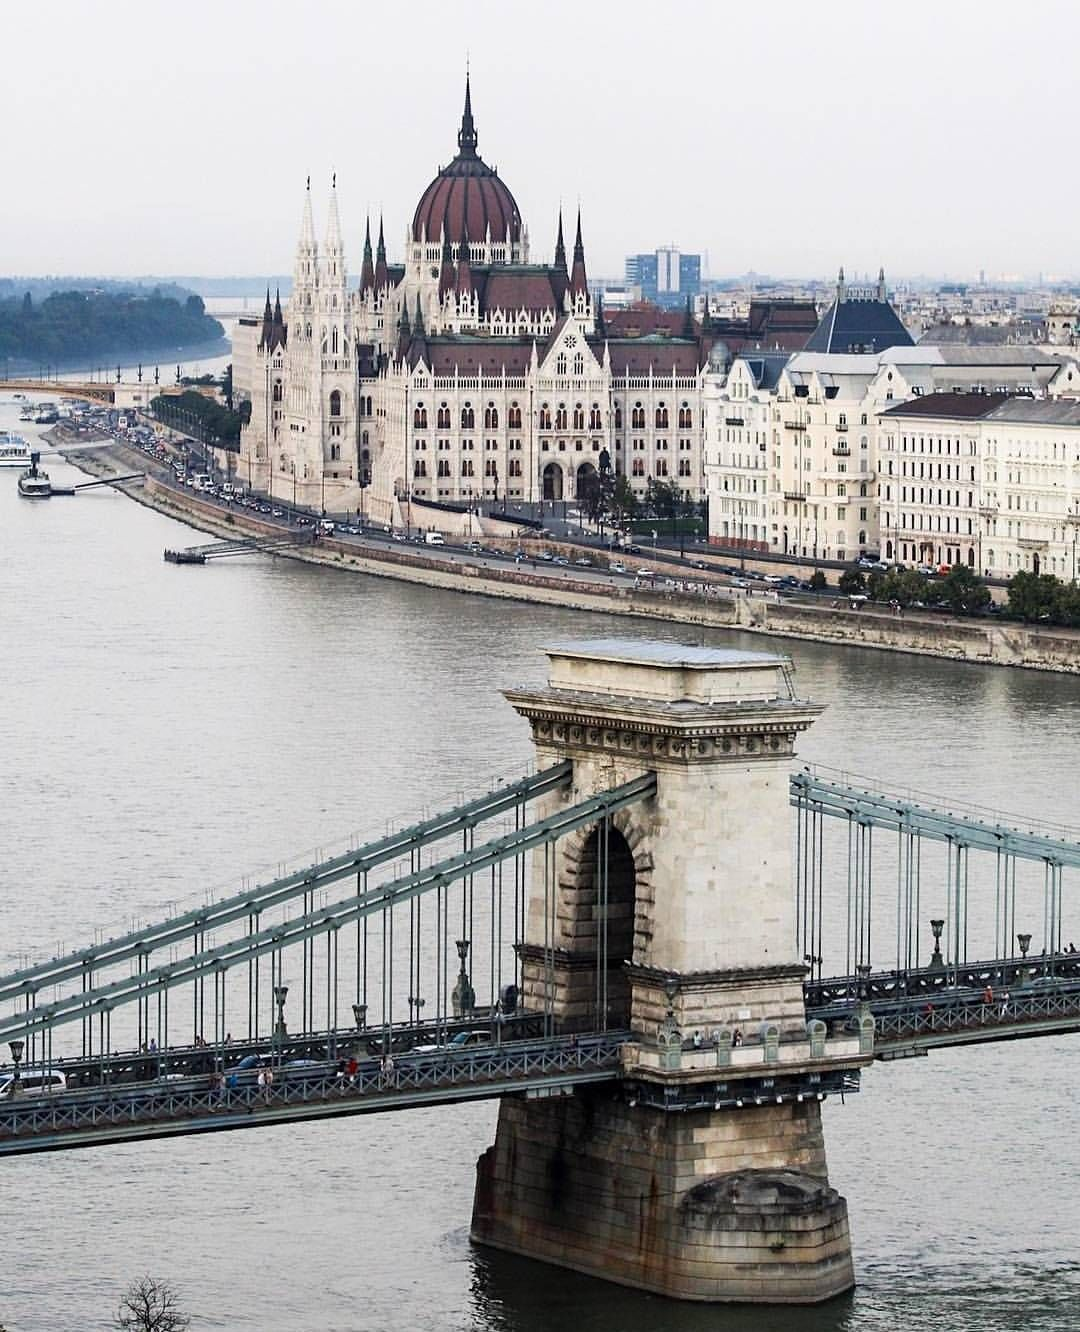 40 5k Likes 245 Comments Living Europe Living Europe On Instagram Chains Bridge View Budapest Hungary Pho Travel Photos Travel Travel Booking Sites